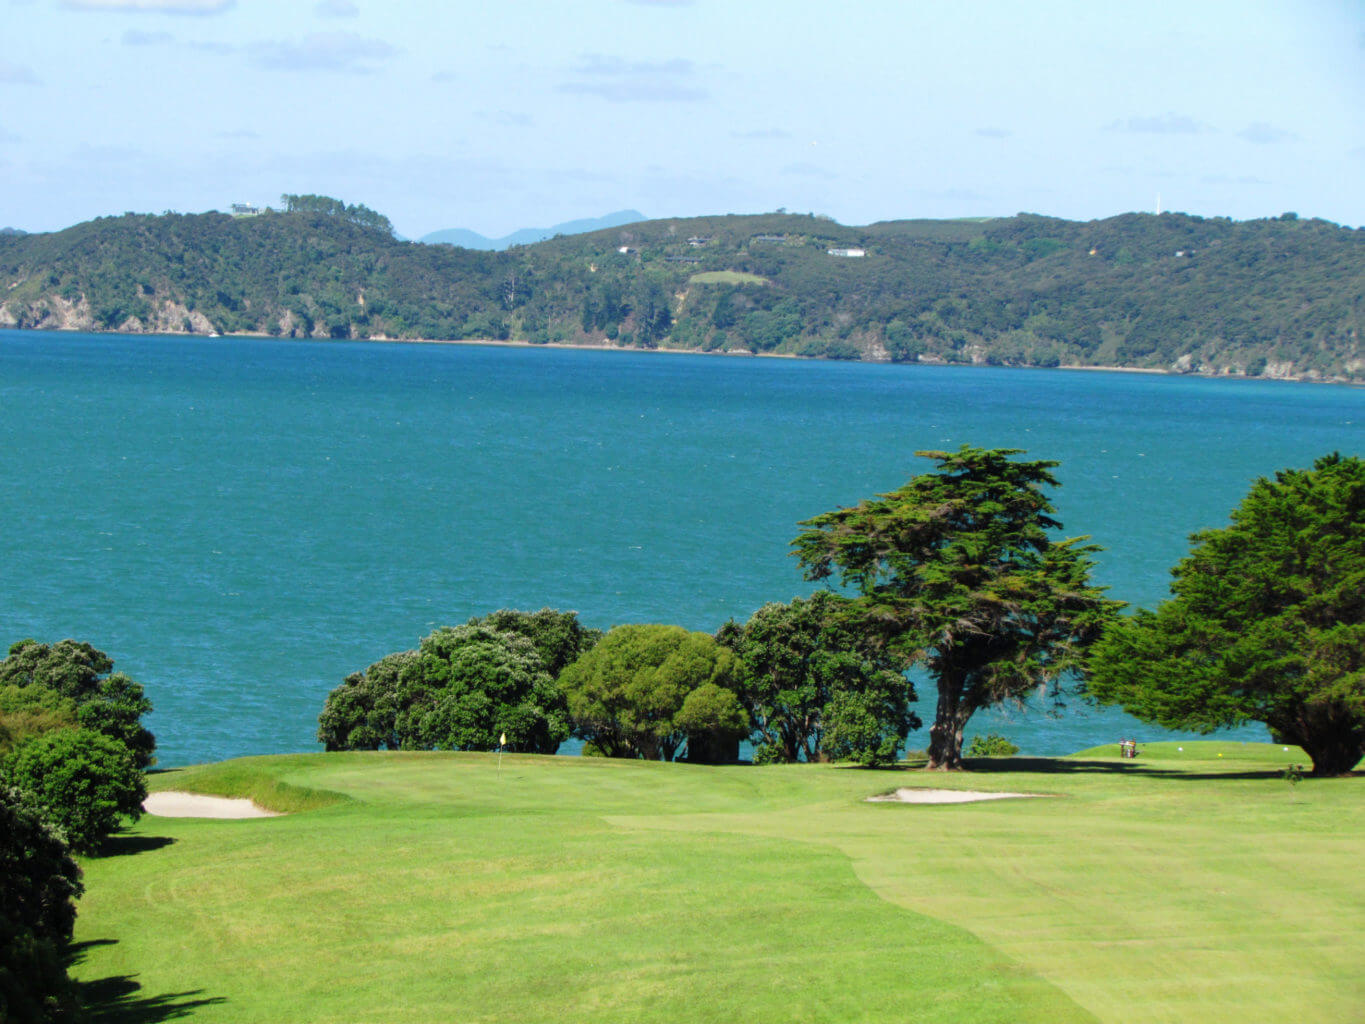 Golf hole leads downhill with Bay of Islands view